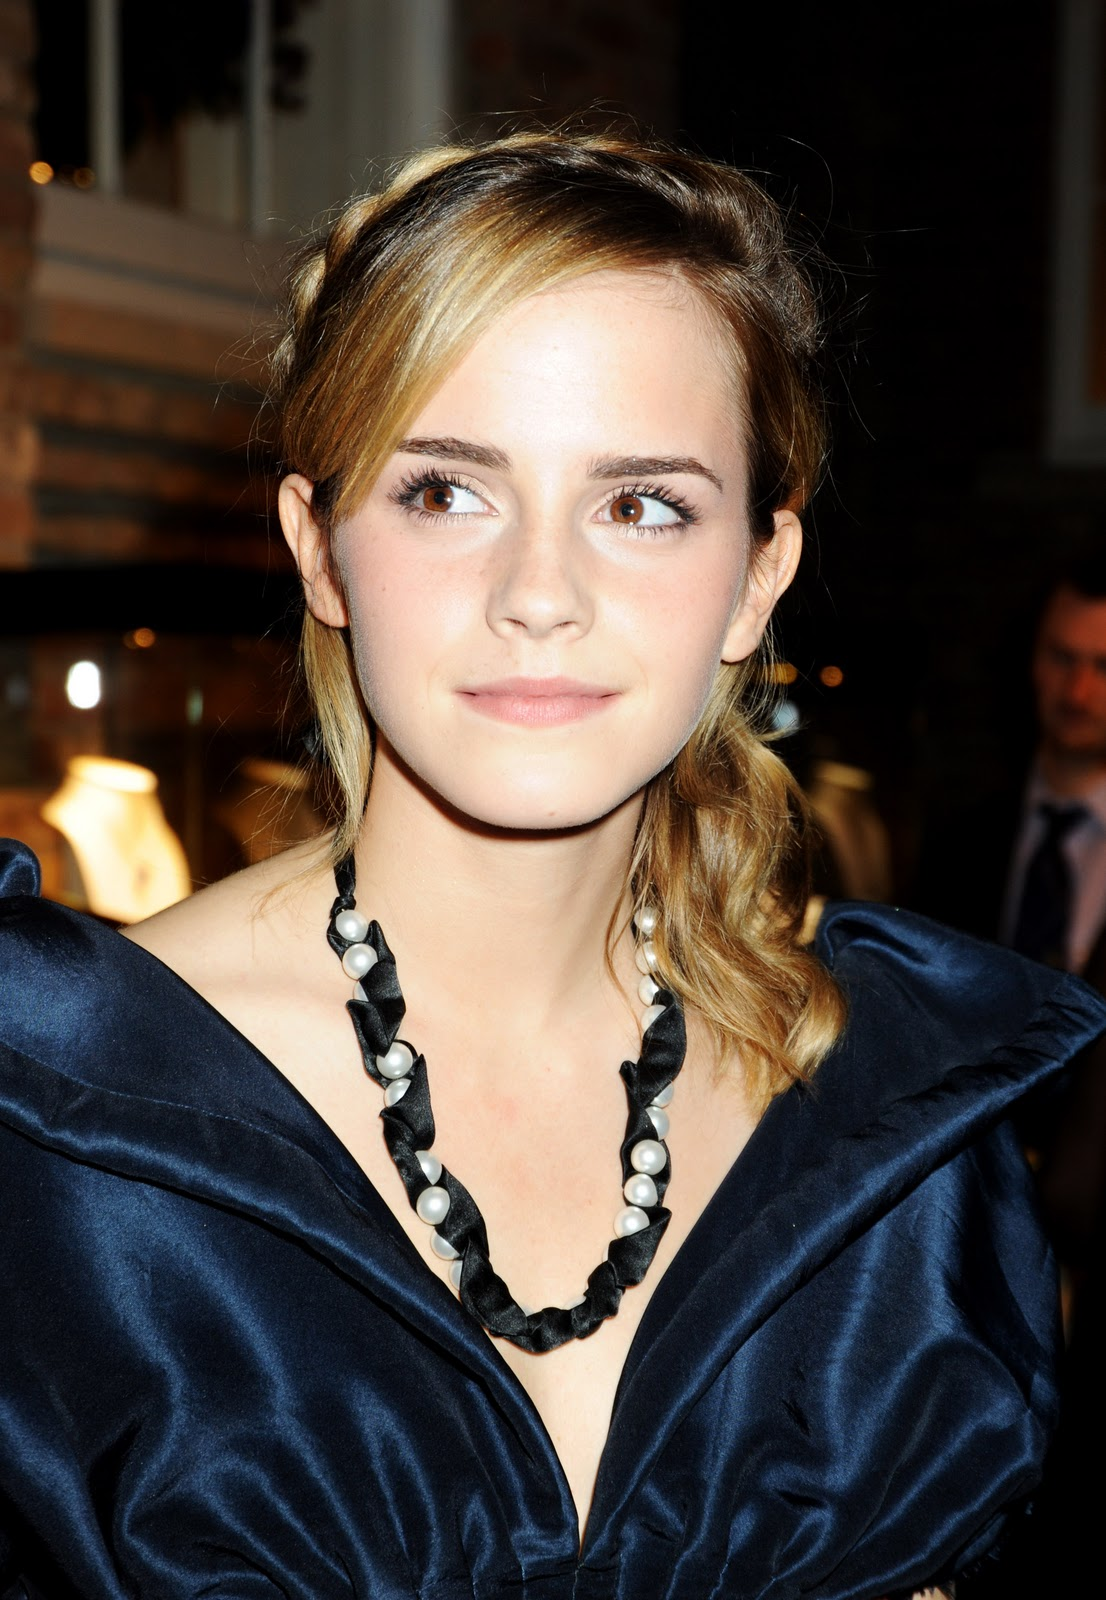 http://4.bp.blogspot.com/-19eIZCE8NPg/Tt-0YUvqJuI/AAAAAAAADH0/Zv2-lH3hxSU/s1600/Girl+Hairstyle%252C+Photo+Gallery%252C+Emma+Watson+Hairstyles%252C+Celebrity+Emma+Watson+Hairstyles%252C+Emma+Watson+Hairstyles+Photo%252C+Latest+Emma+Watson+Hairstyles%252C+Emma+Watson+Hairstyles+Cutting+%252858%2529.jpg